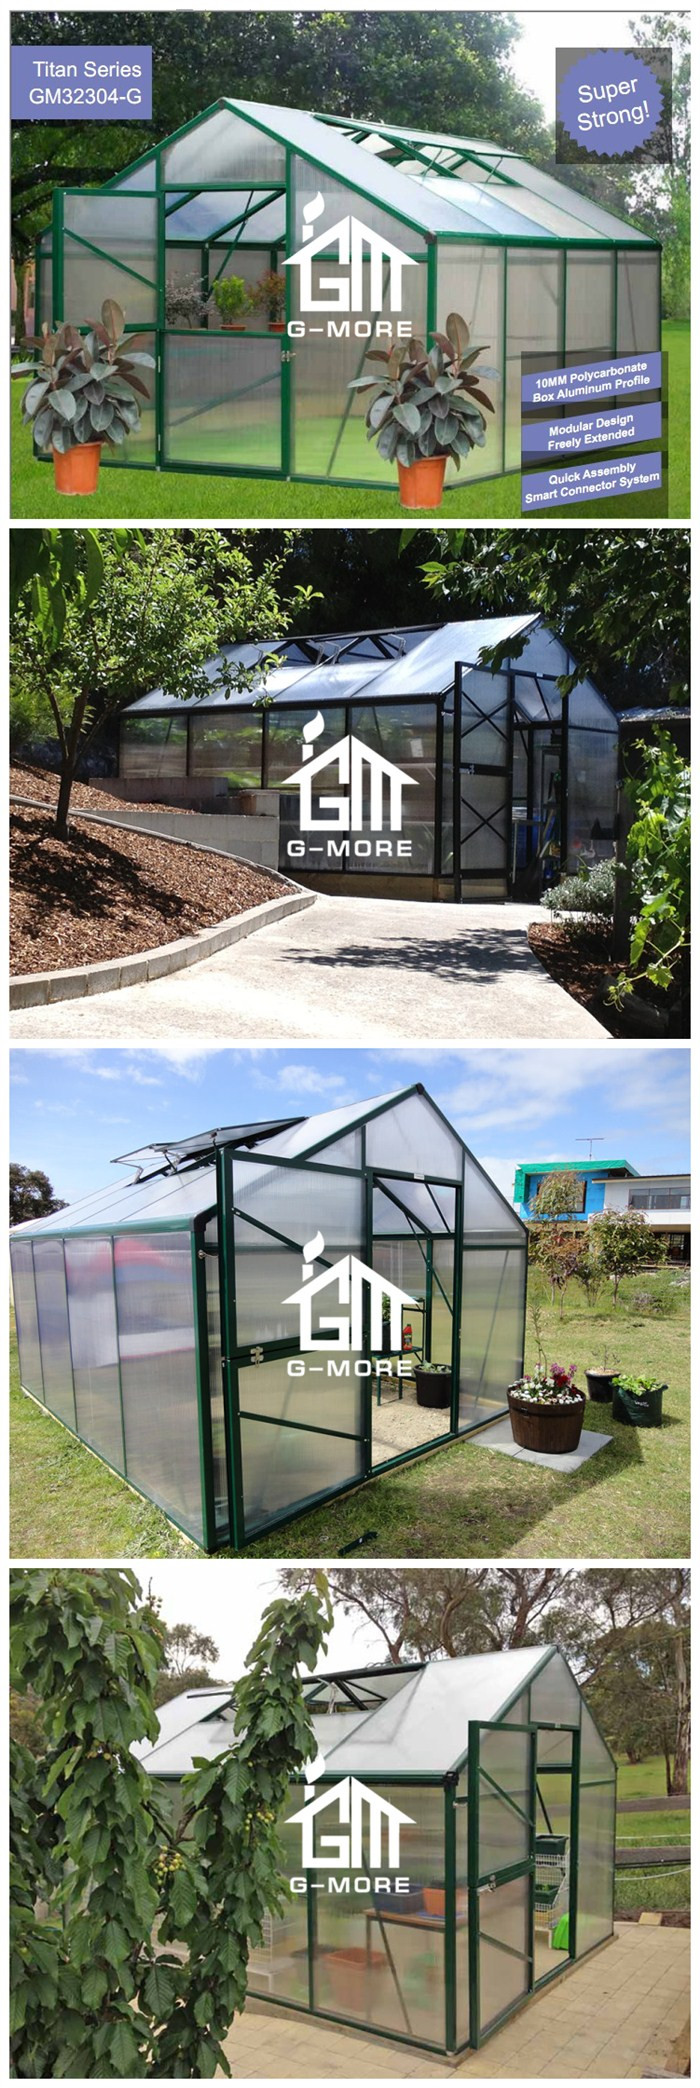 G-MORE Titan/Grange Series, 3M Width/4M length, Premium Harvest Aluminum/10MM Polycarbonate Hobby Greenhouse(GM32304-B)